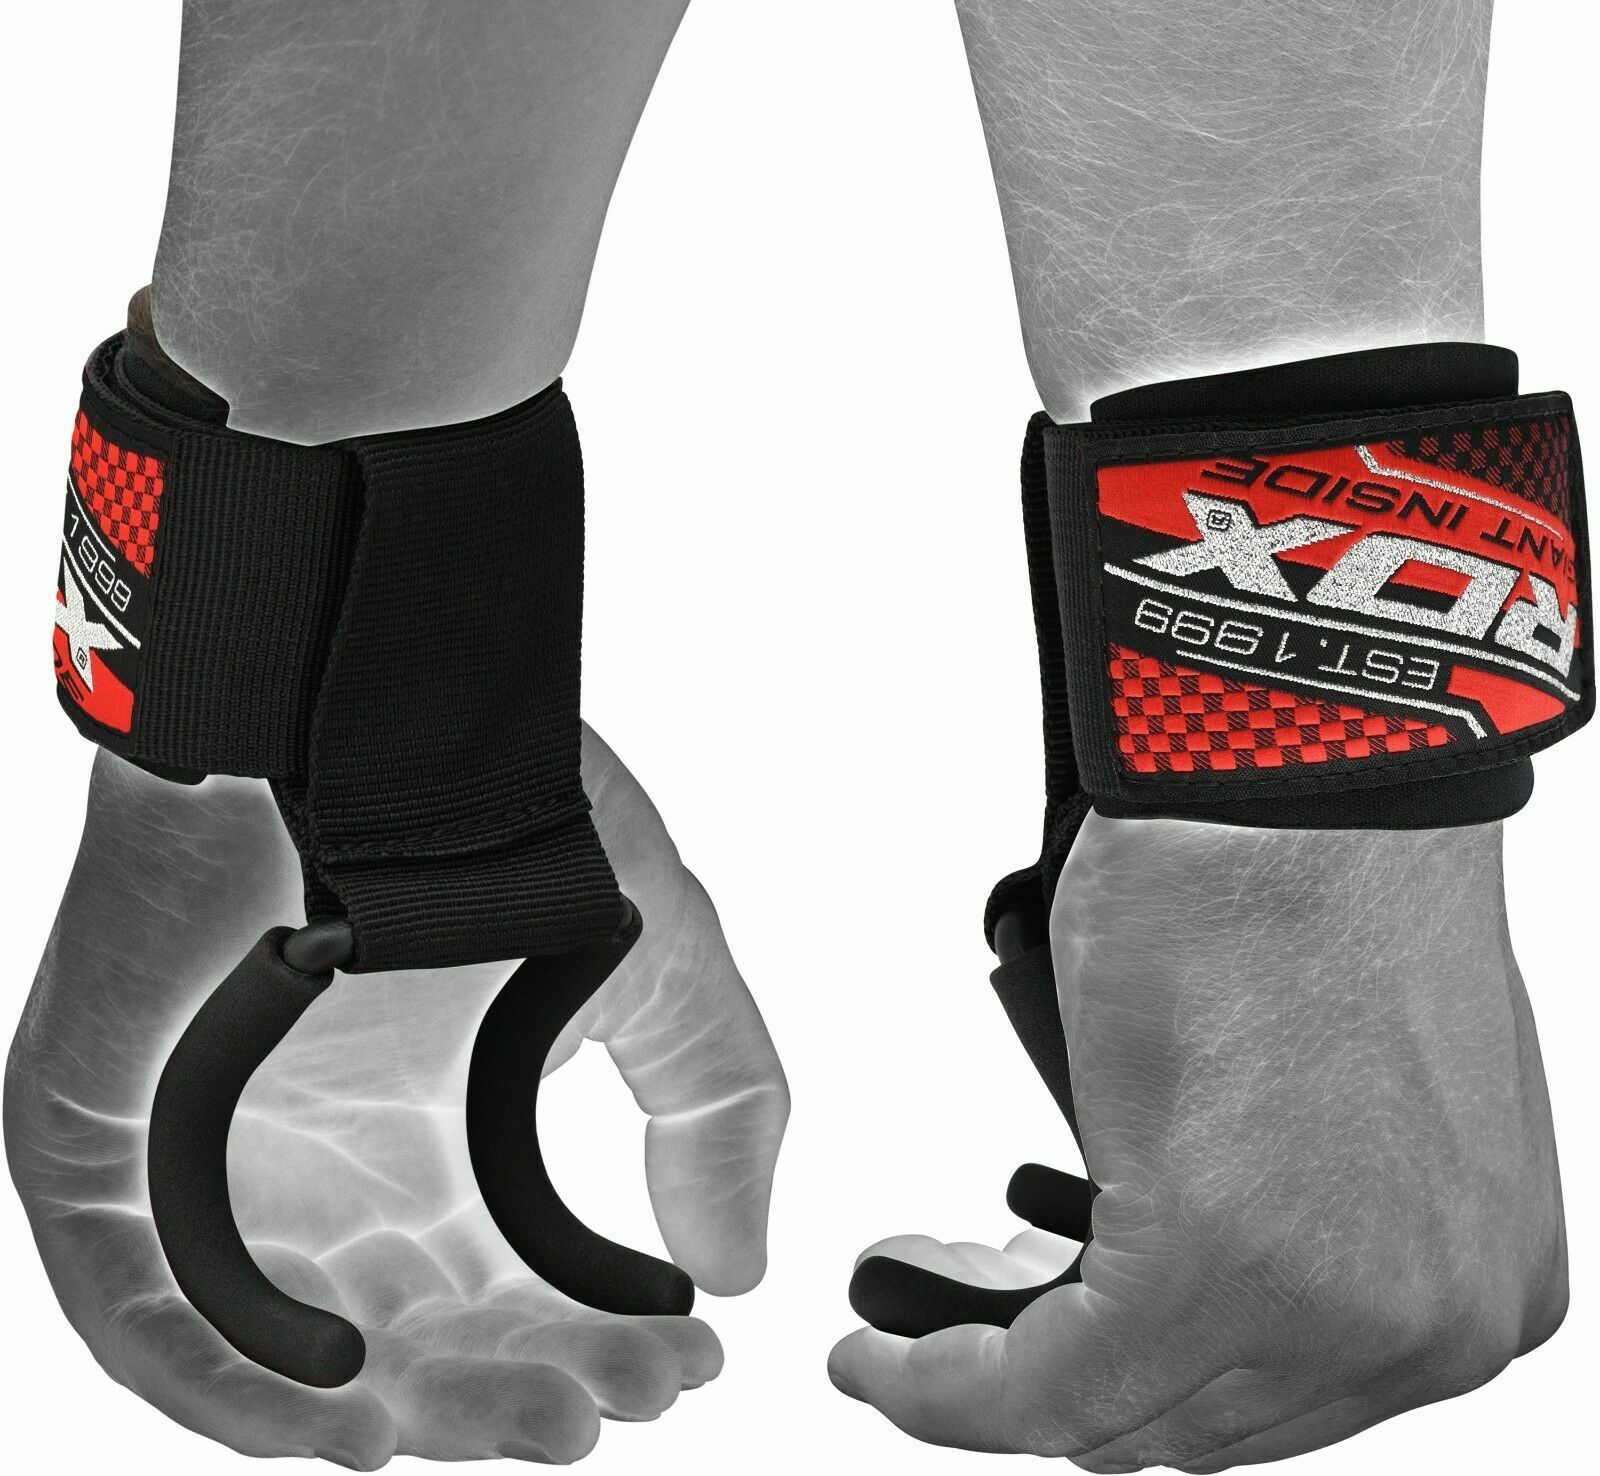 RDX Weight Lifting Training Gym Hook Straps Grips Gloves Wrist Support CA